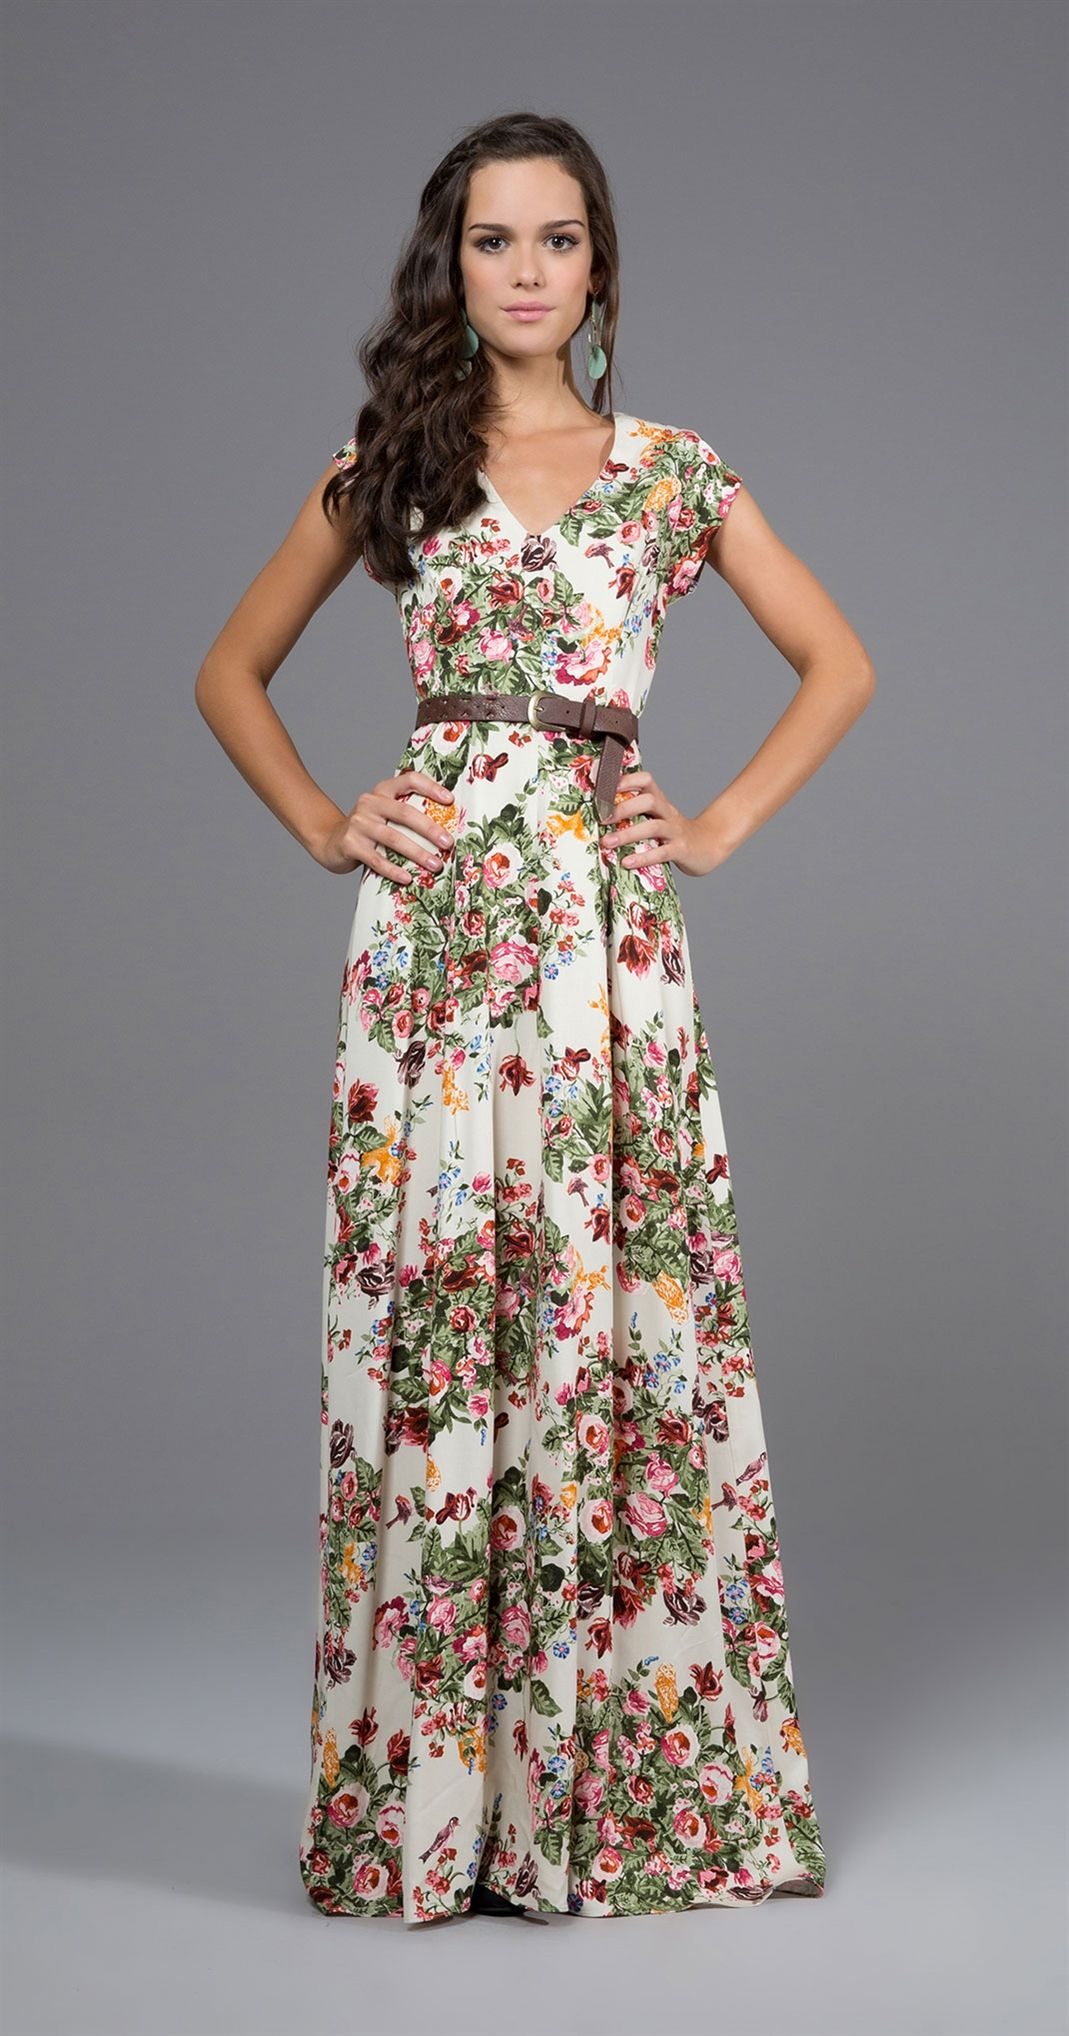 Long dresses for summer wedding  Floral maxi  Style  Pinterest  Maxi dresses Fans and Nice